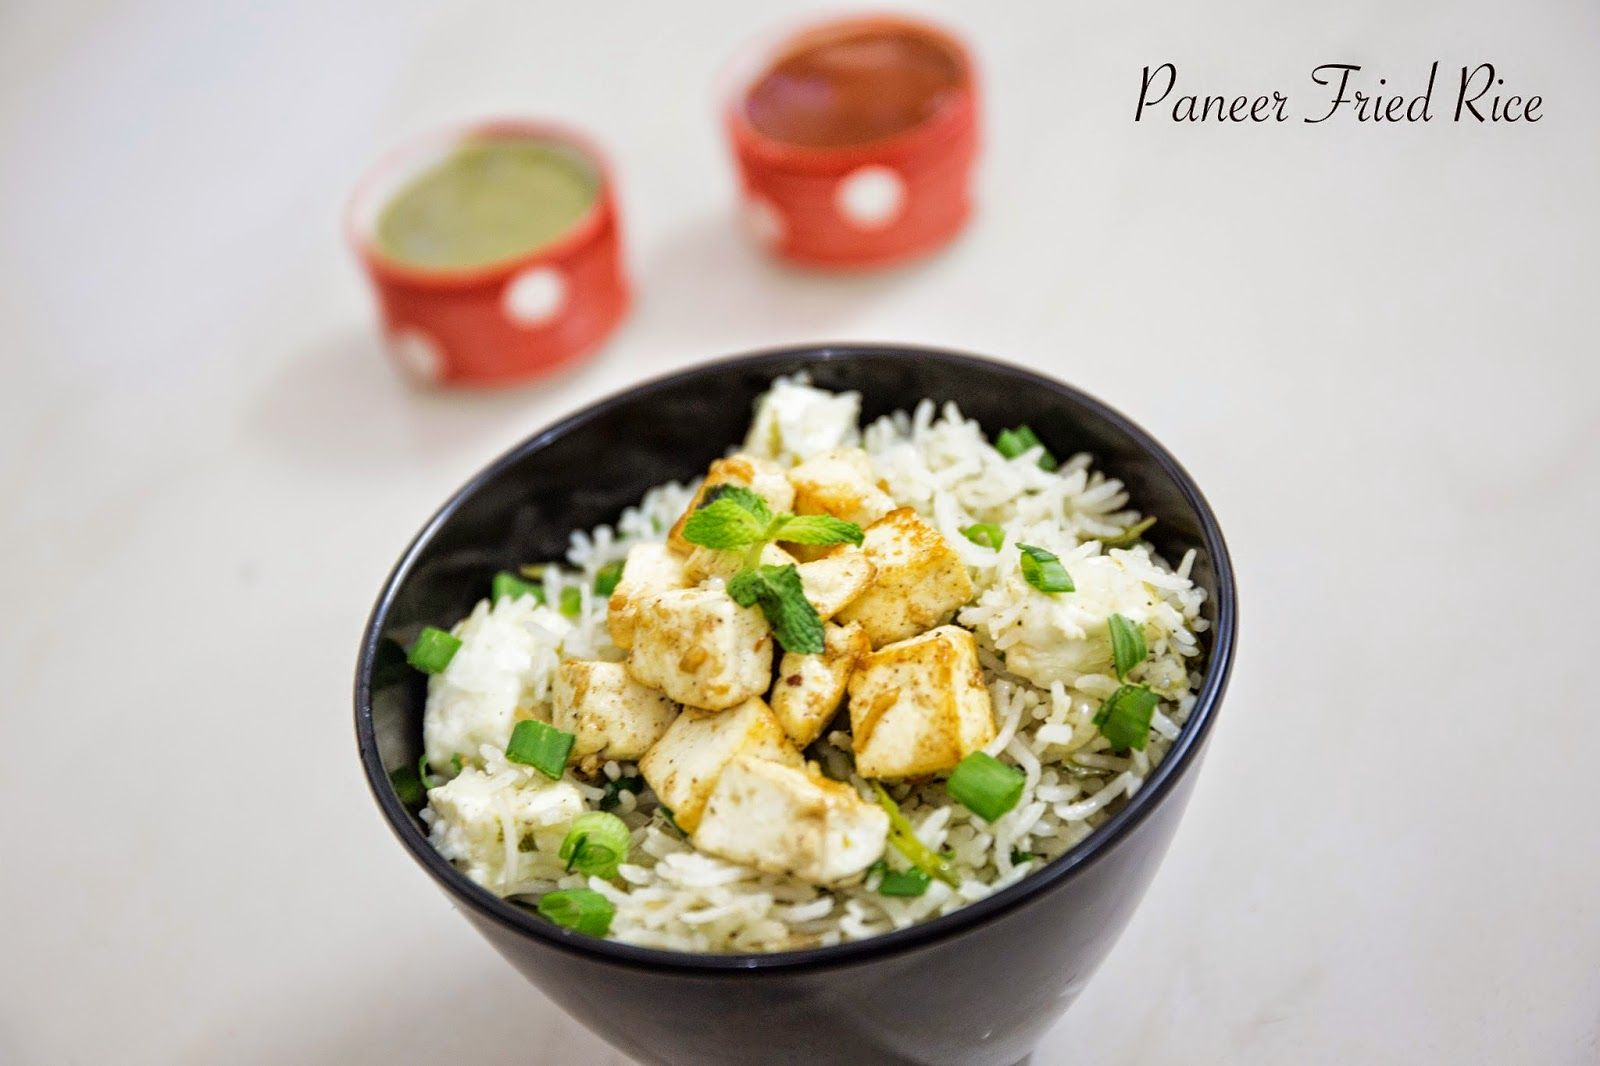 vegfood: Paneer Fried Rice / Cottage Cheese Fried Rice